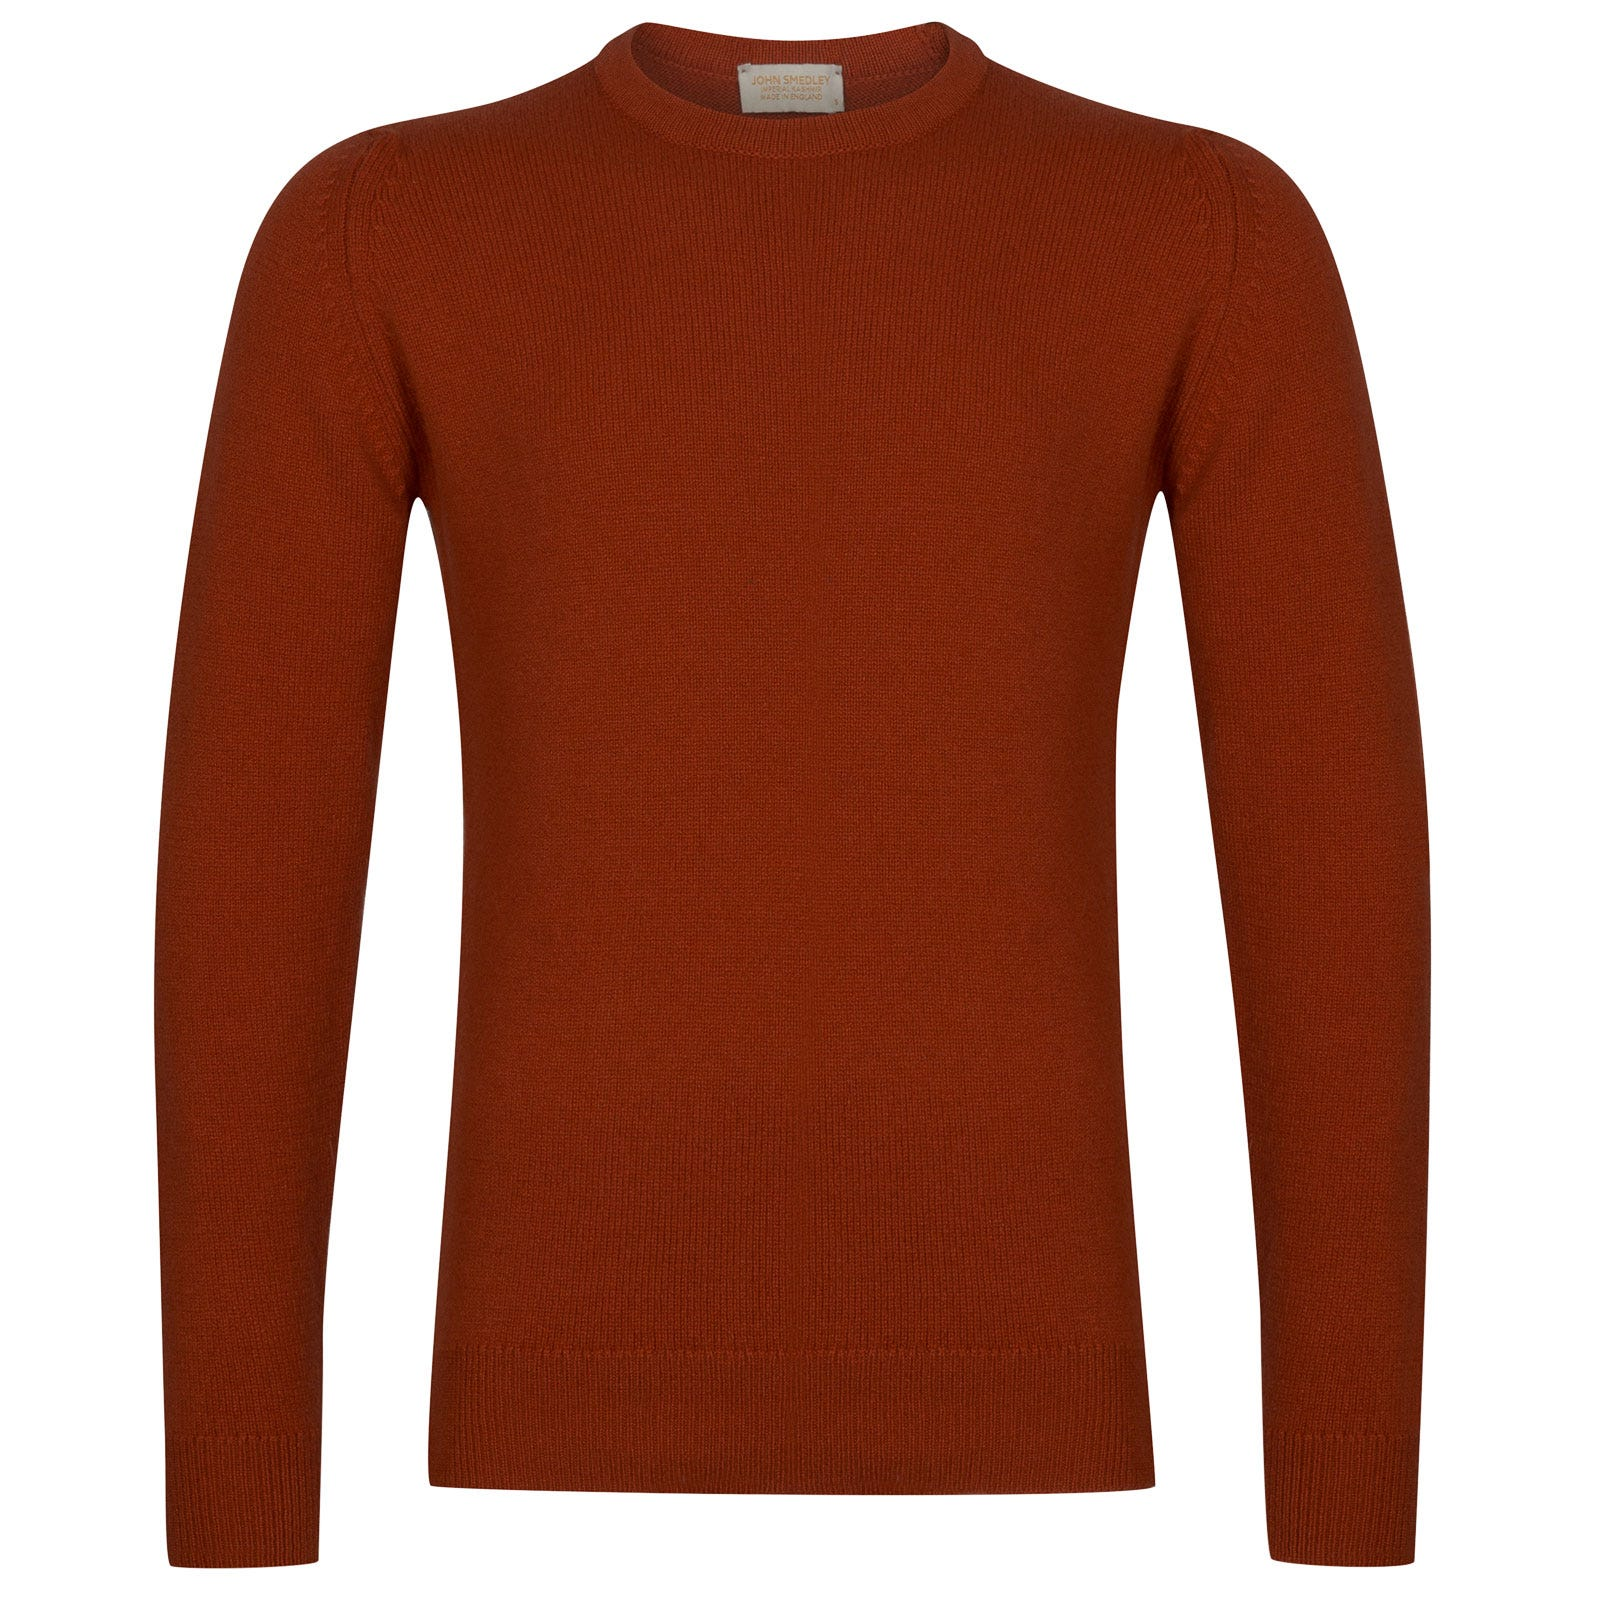 John Smedley Crowford Wool and Cashmere Pullover in Flare Orange-XL